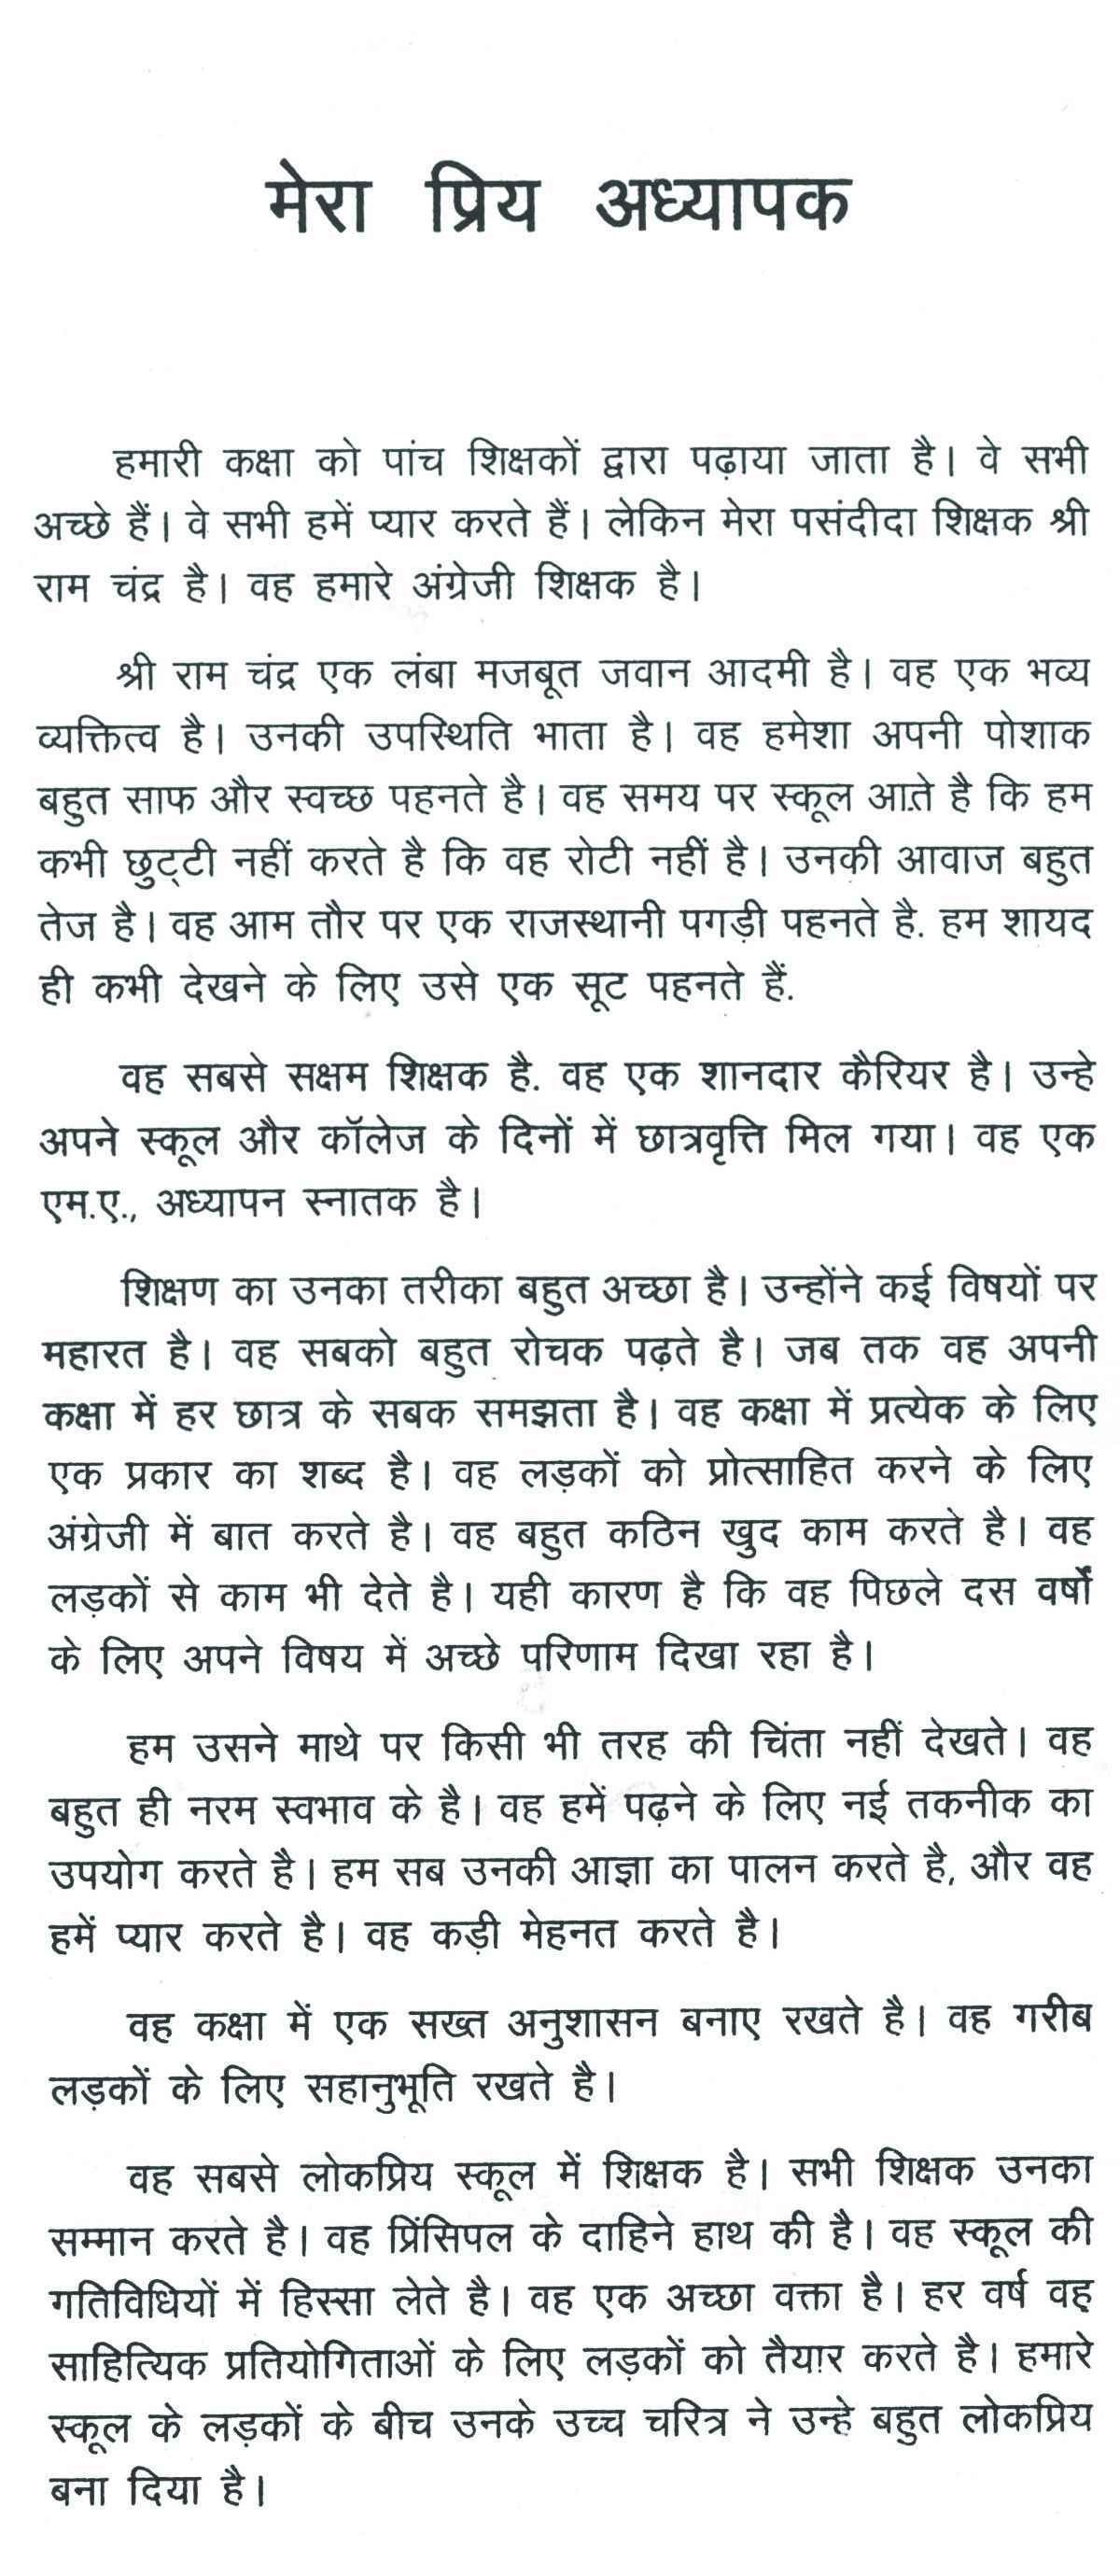 003 Essay Example 10005 Thumb Inspirational Breathtaking Essays In Hindi About Life And Struggles Fathers Full